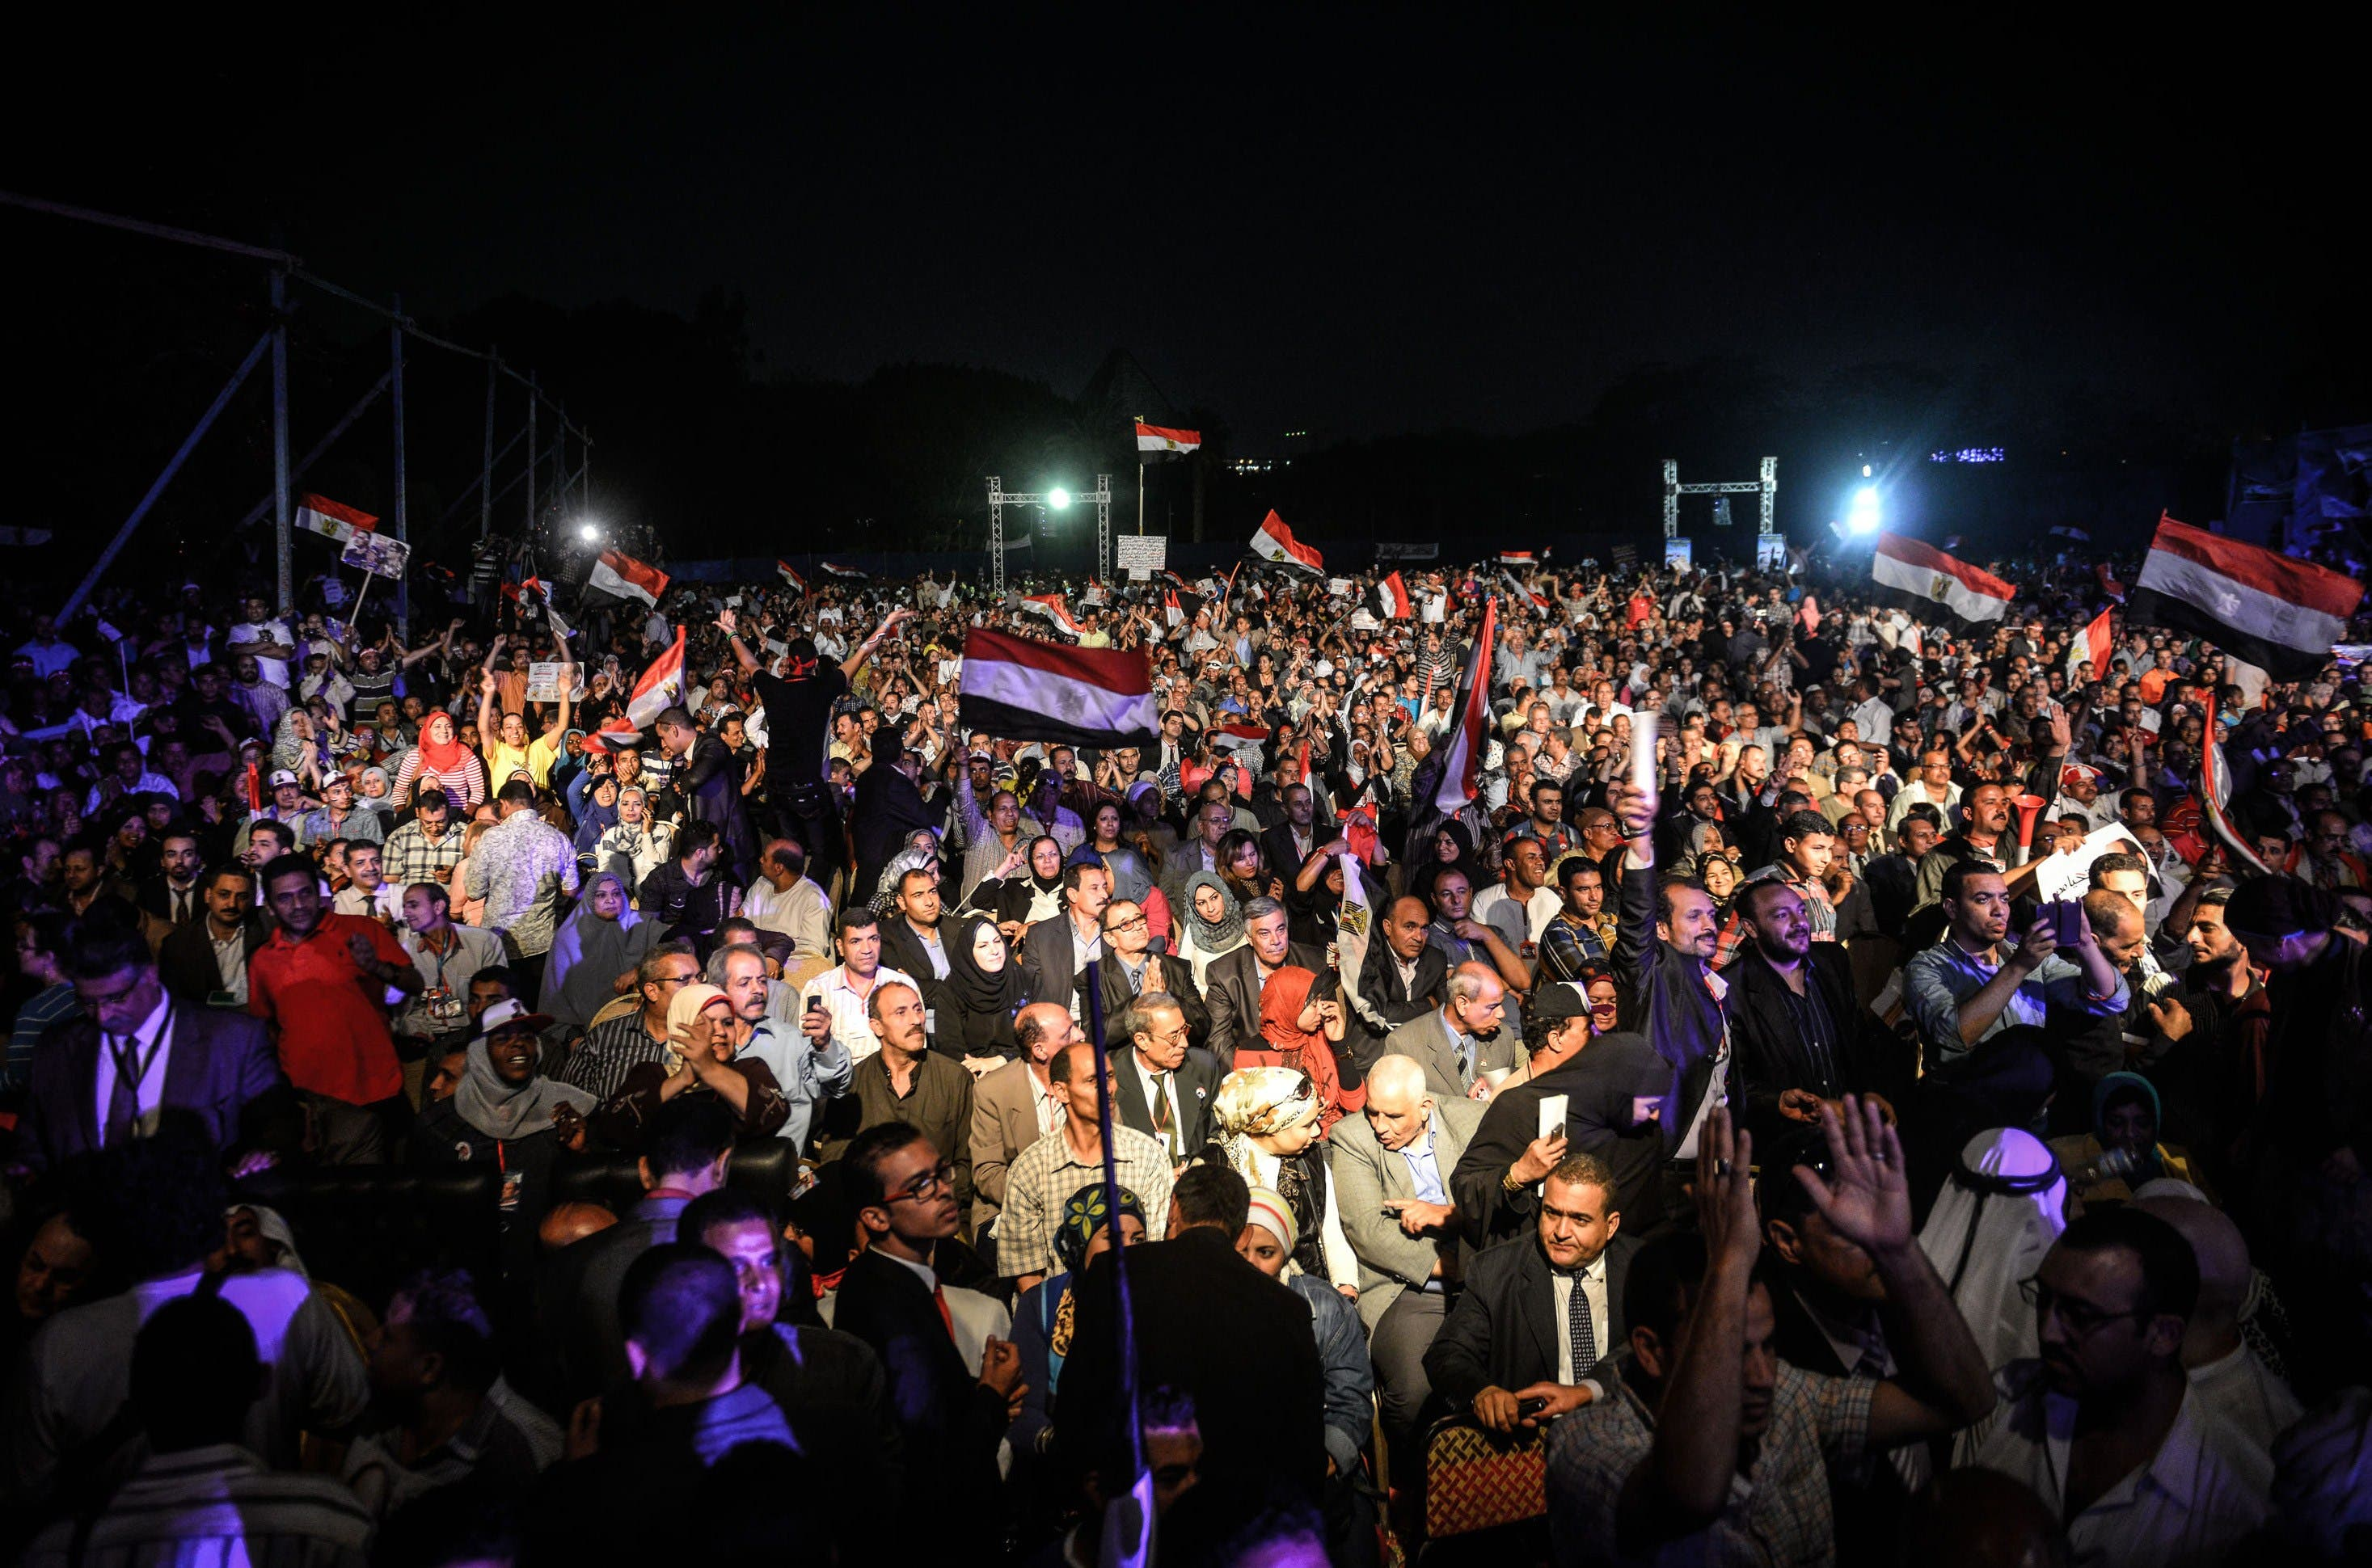 Sisi supporters hold presidential campaign rally